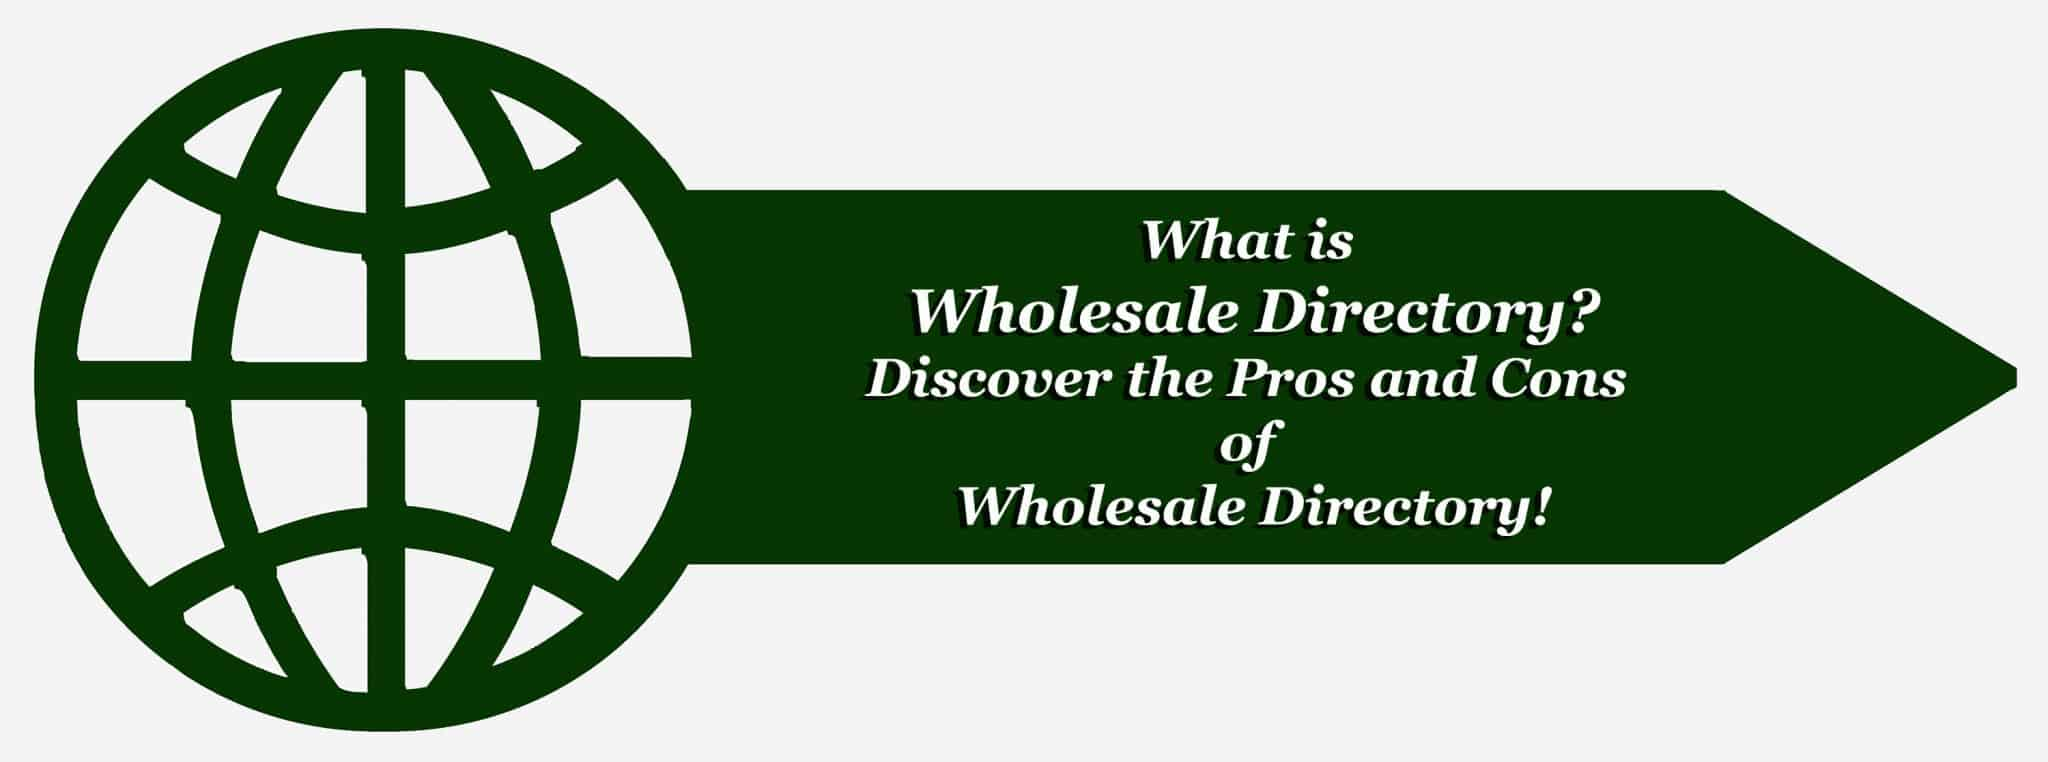 What is Wholesale Directory – Discover the Pros and Cons of Wholesale Directory